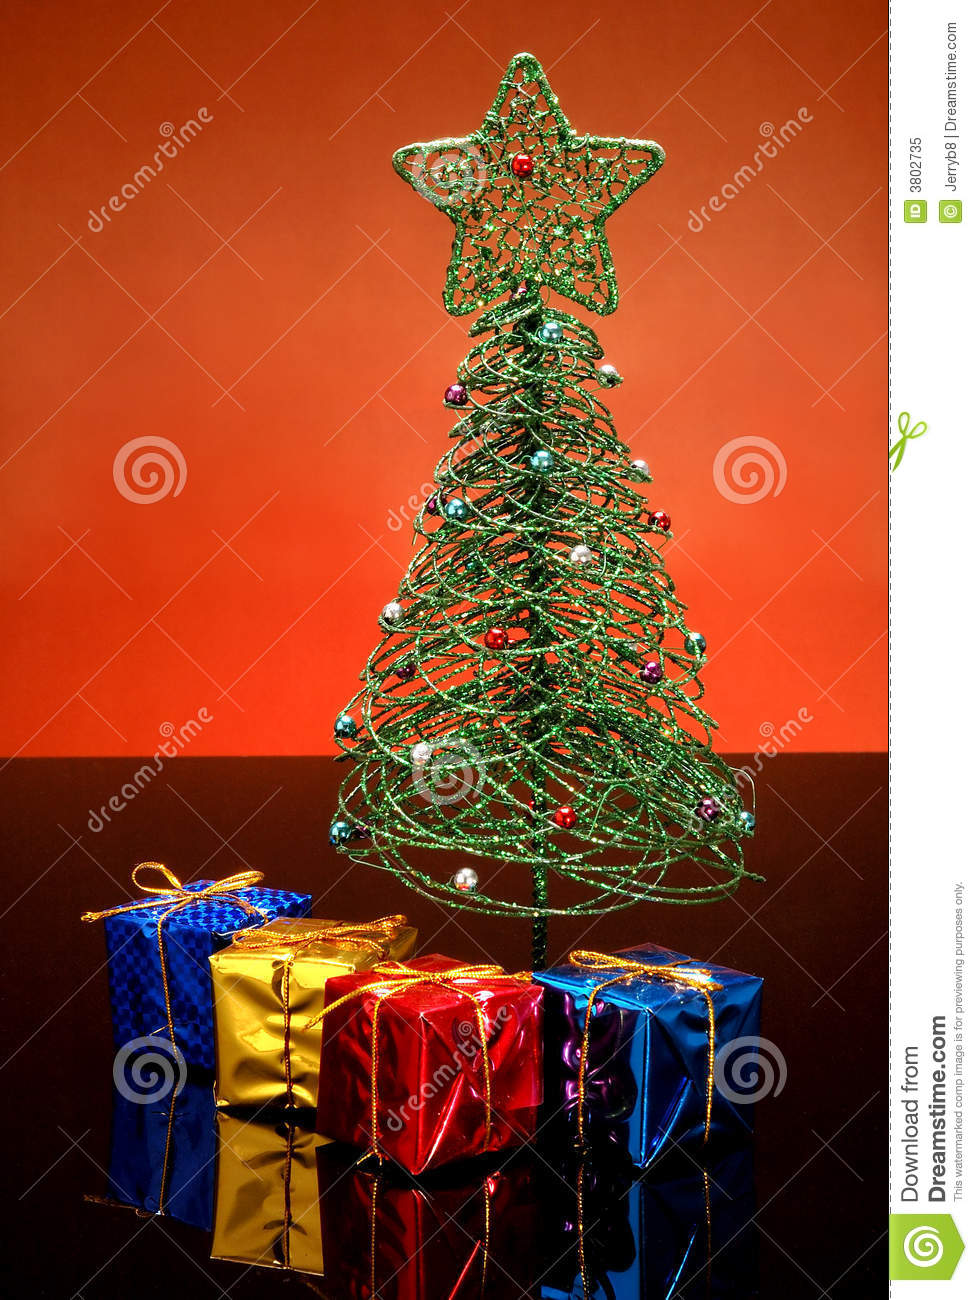 Tiny Christmas Tree And Gifts Stock Image - Image of wound, green ...